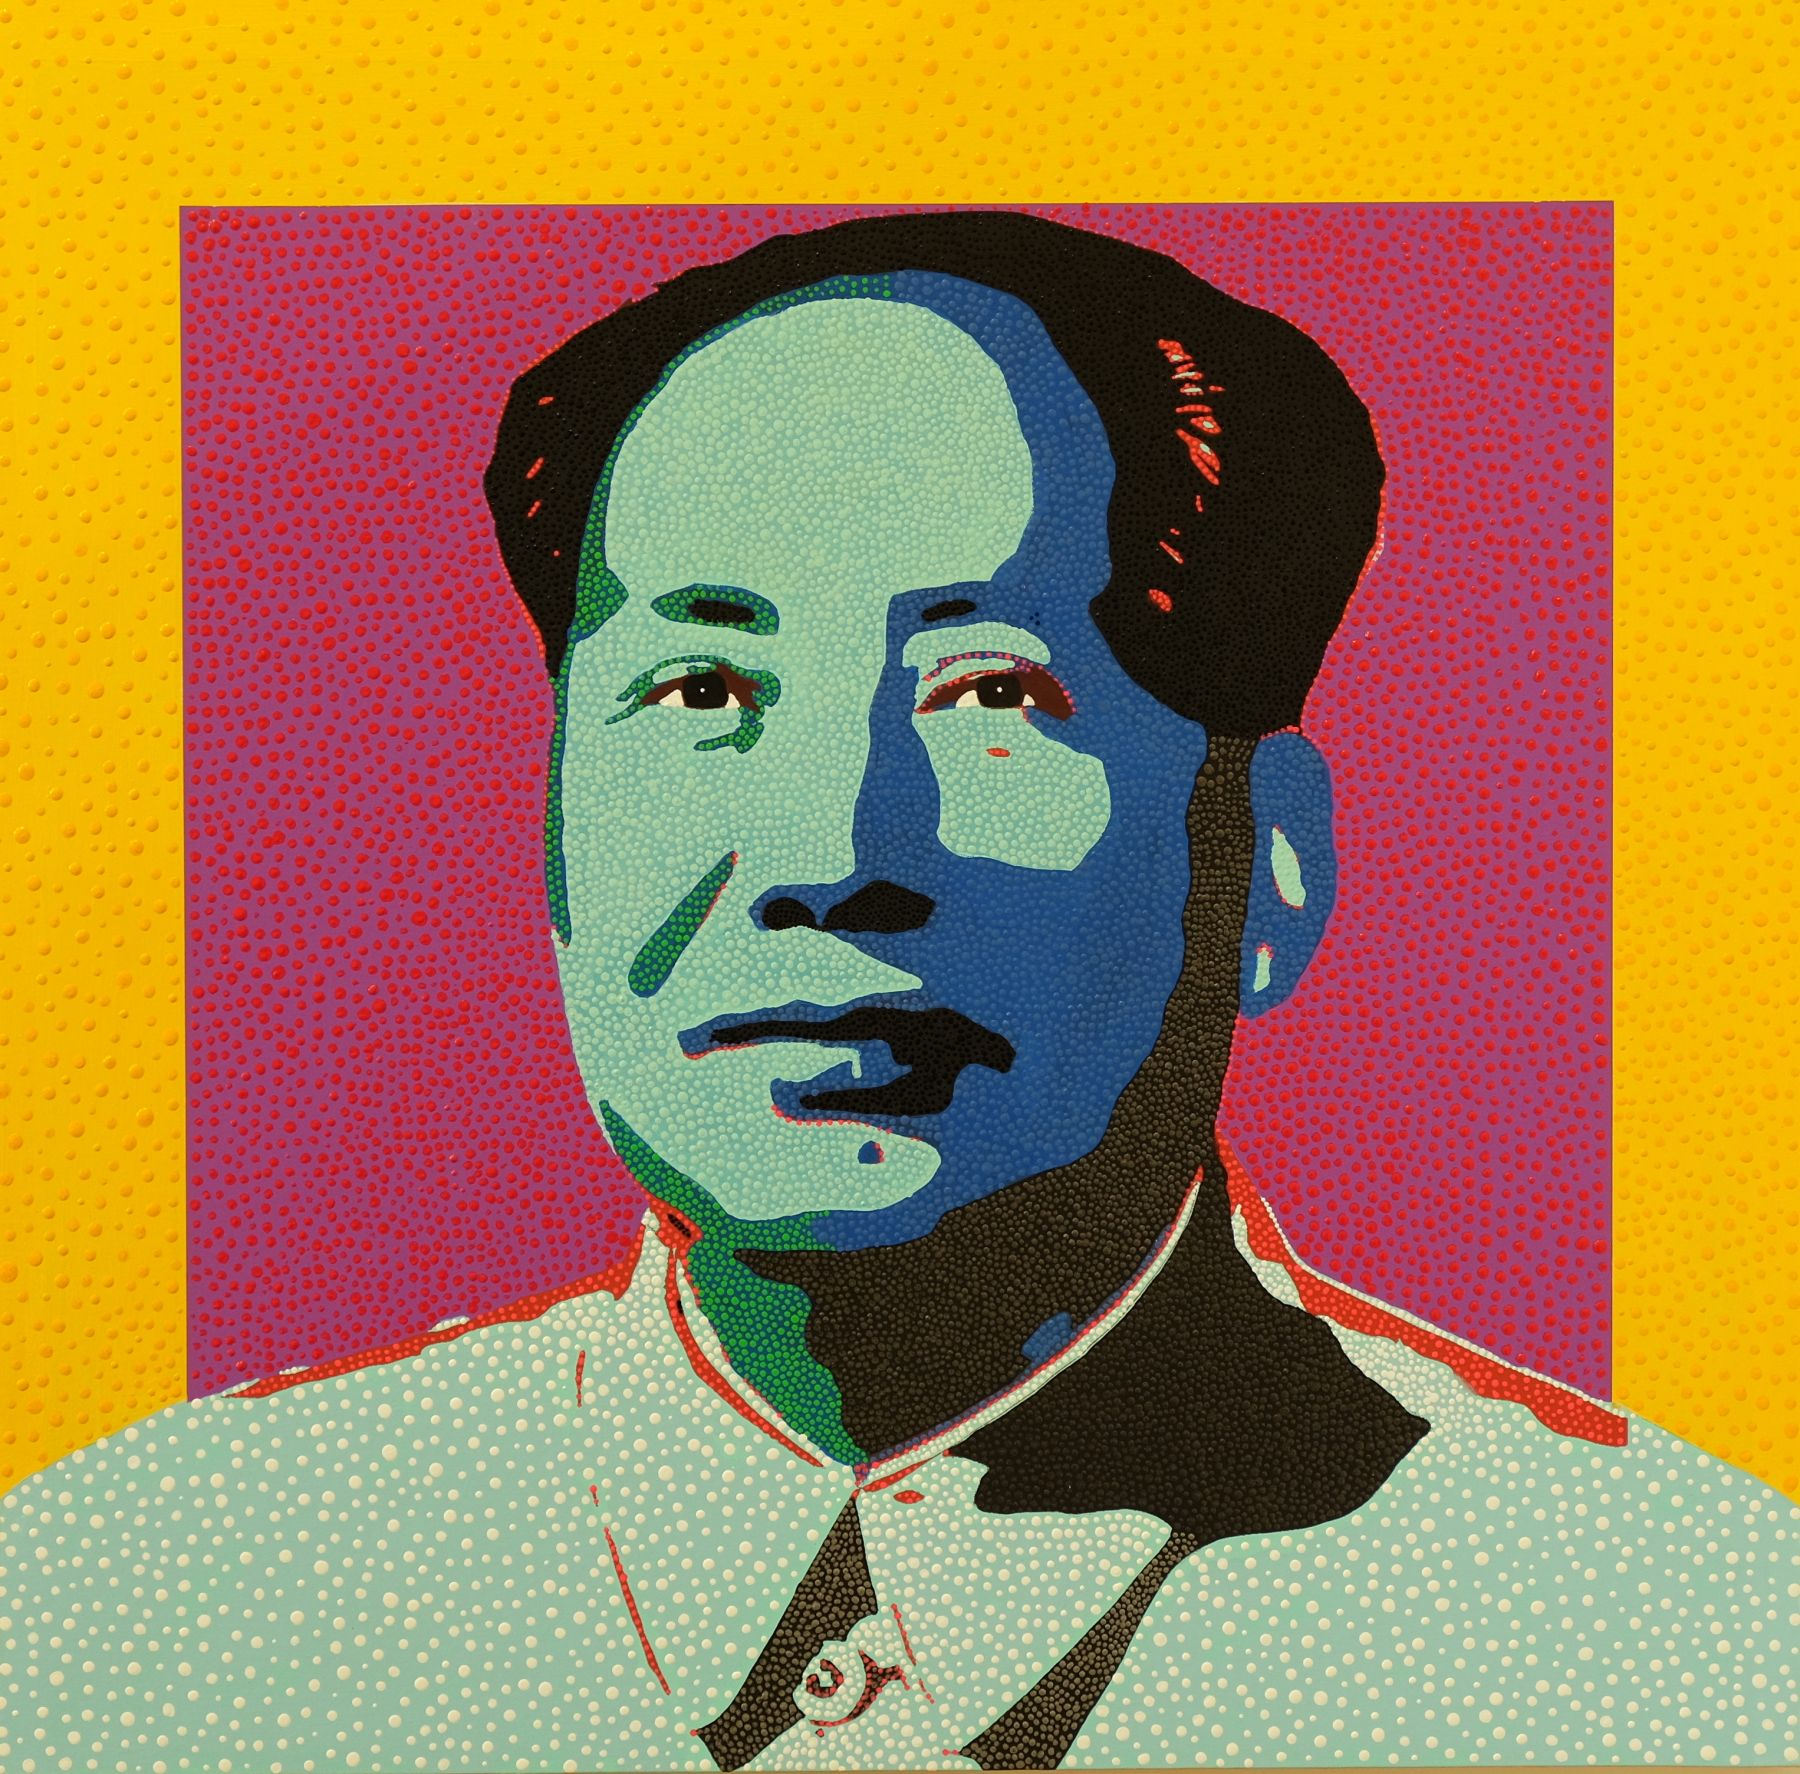 Mao Squared from Dot Pop by Philip Tsiaras at Hg Contemporary founded by Philippe Hoerle Guggenheim